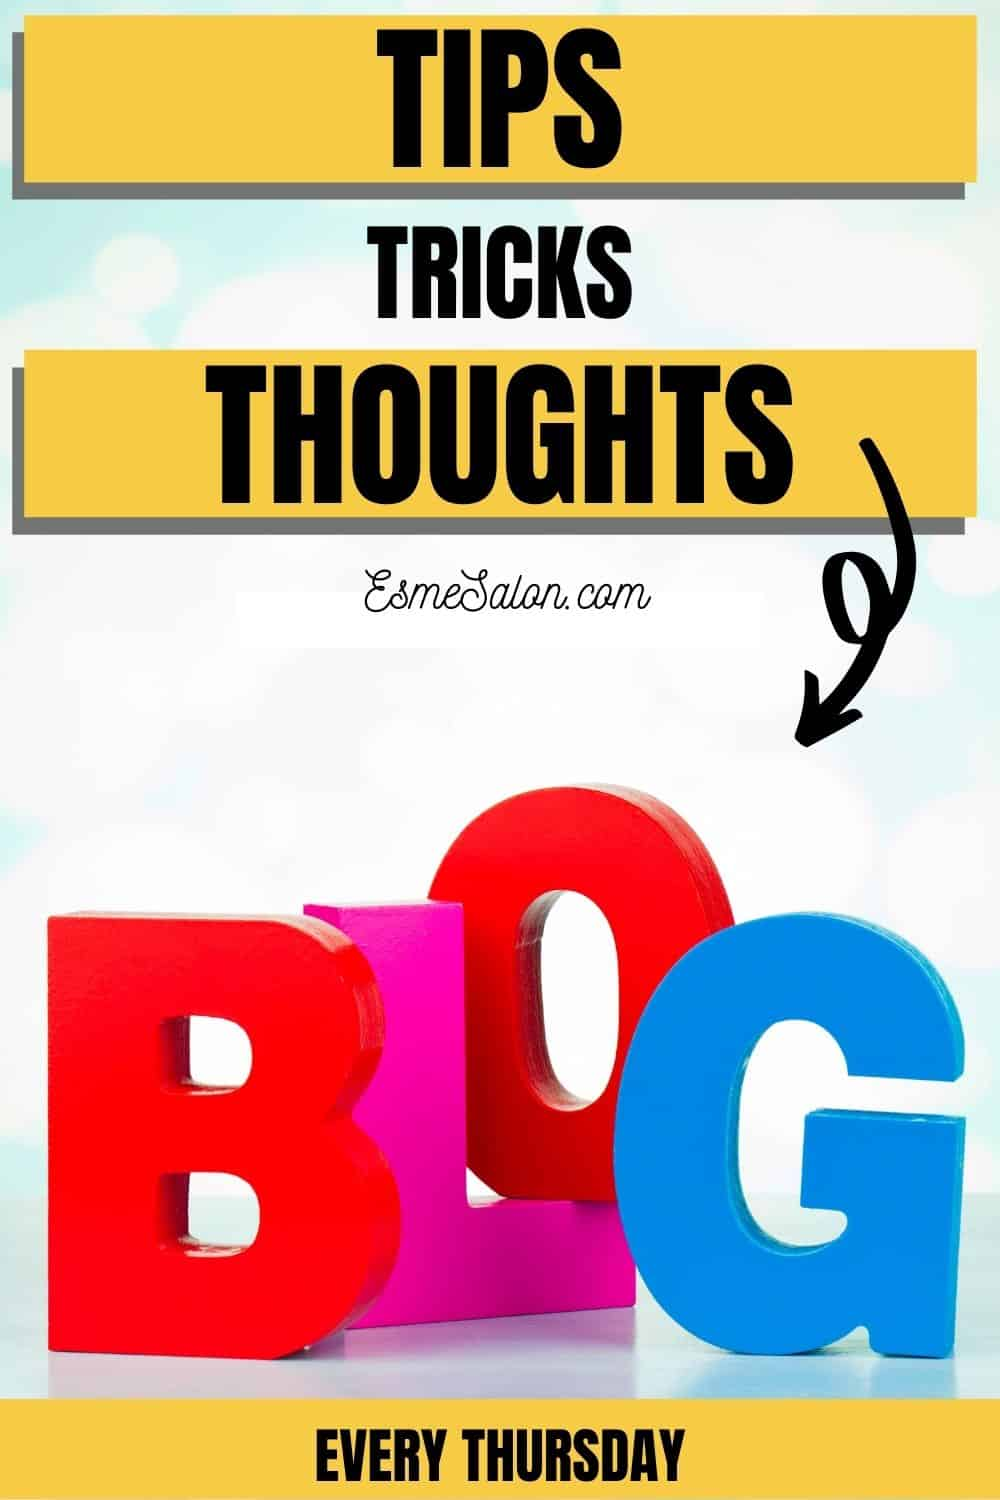 2 Thursday Tips Tricks and Thoughts